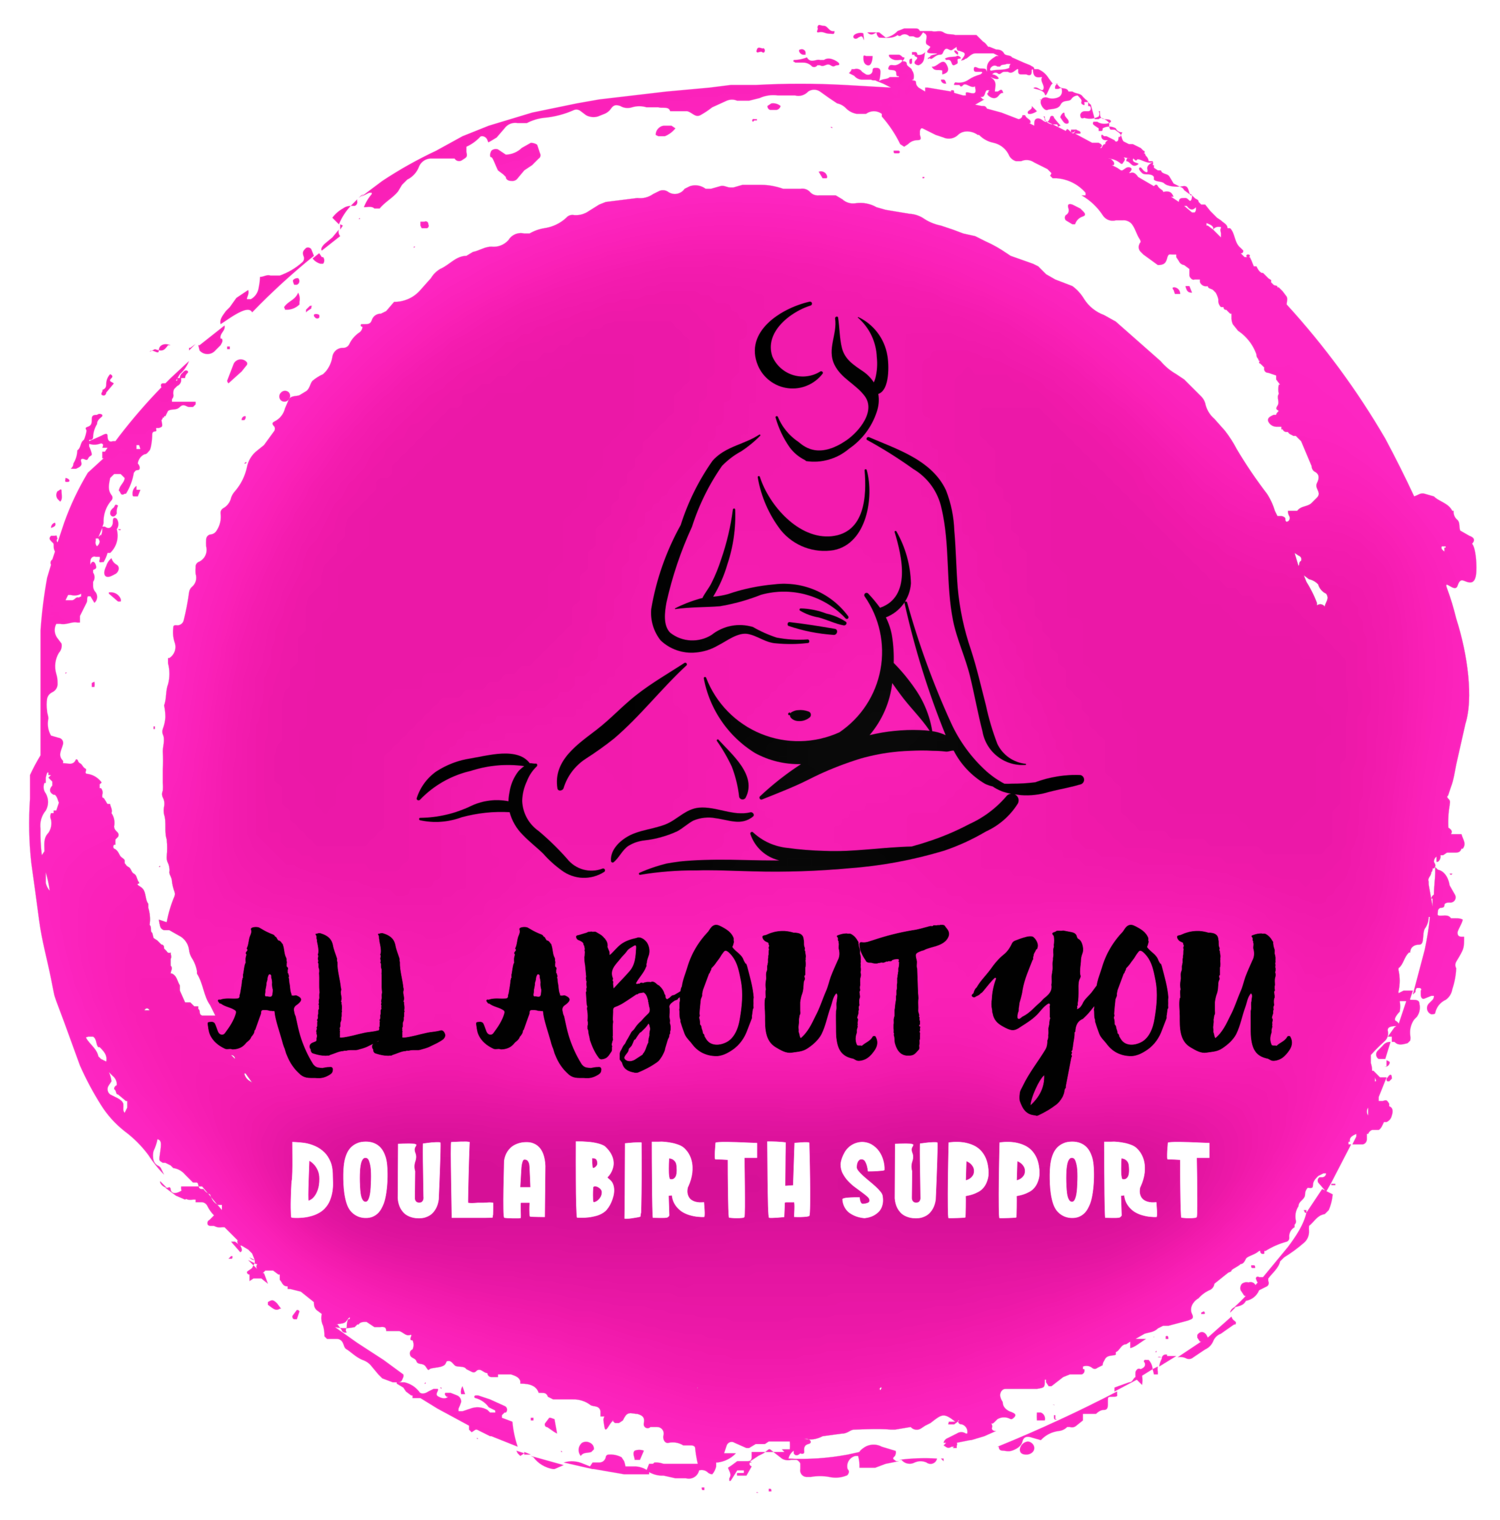 All About You Doula Birth Support